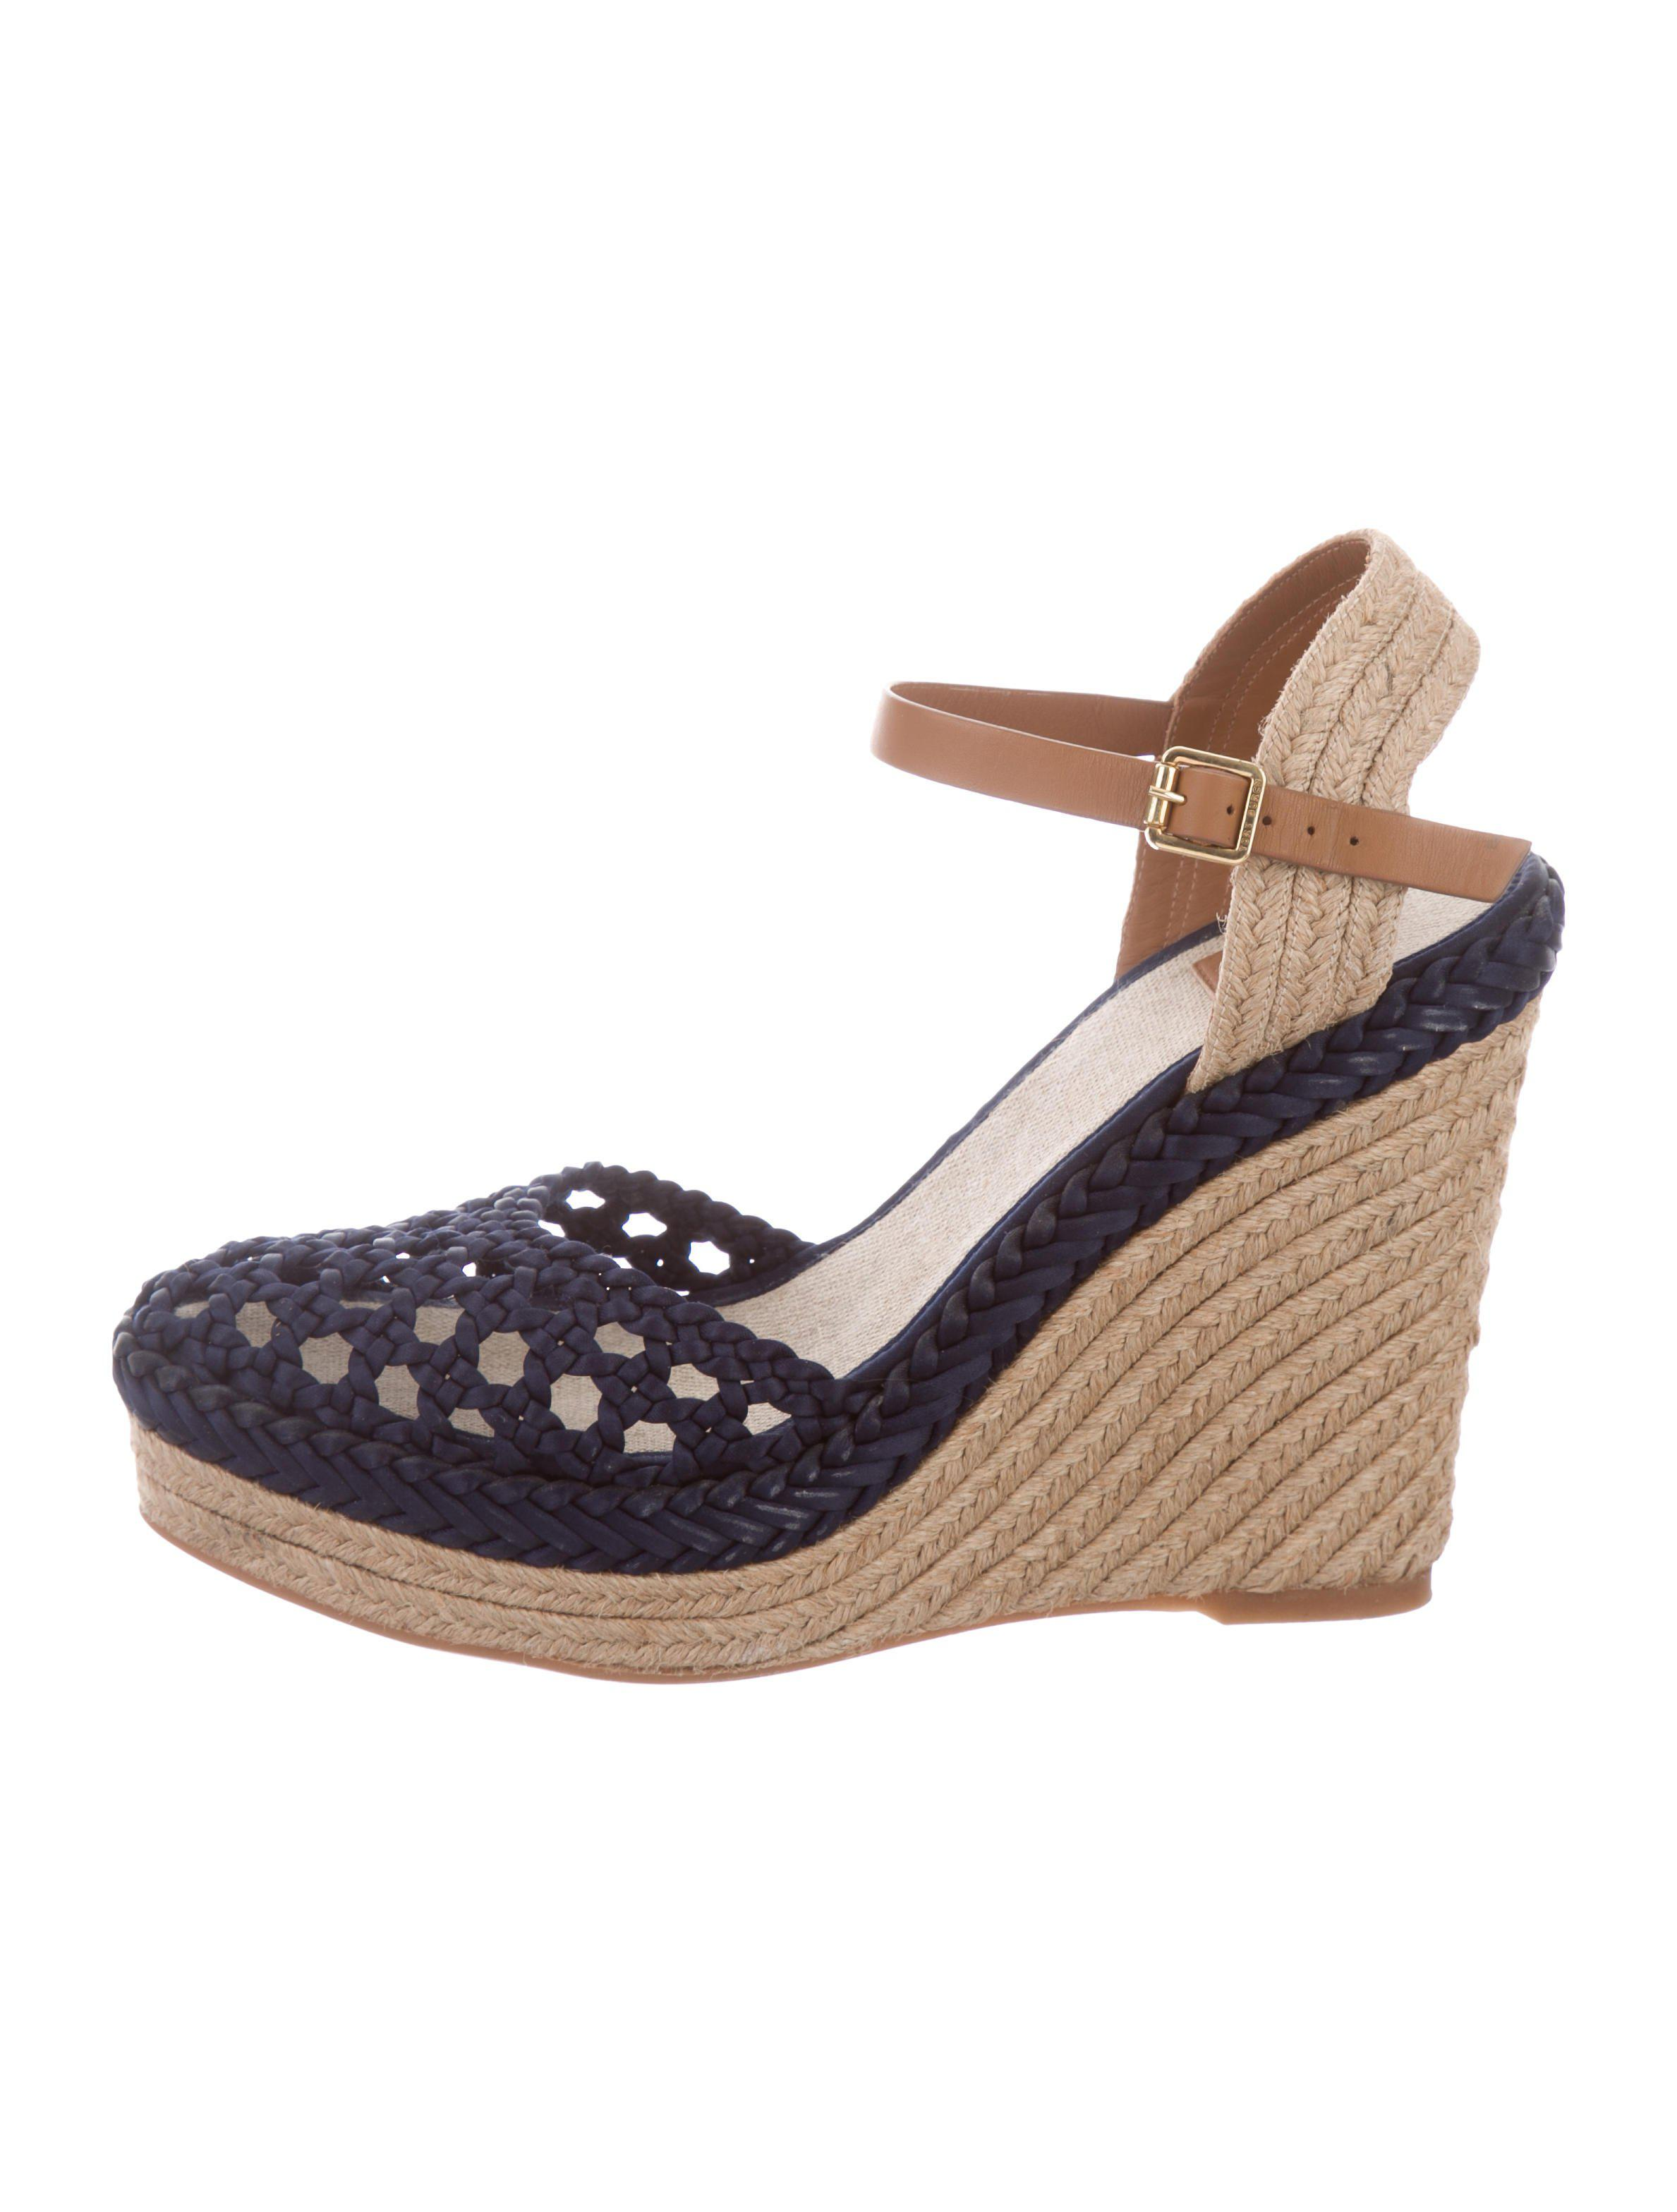 96461def70 Lyst - Tory Burch Ankle Strap Espadrille Wedges Navy in Natural